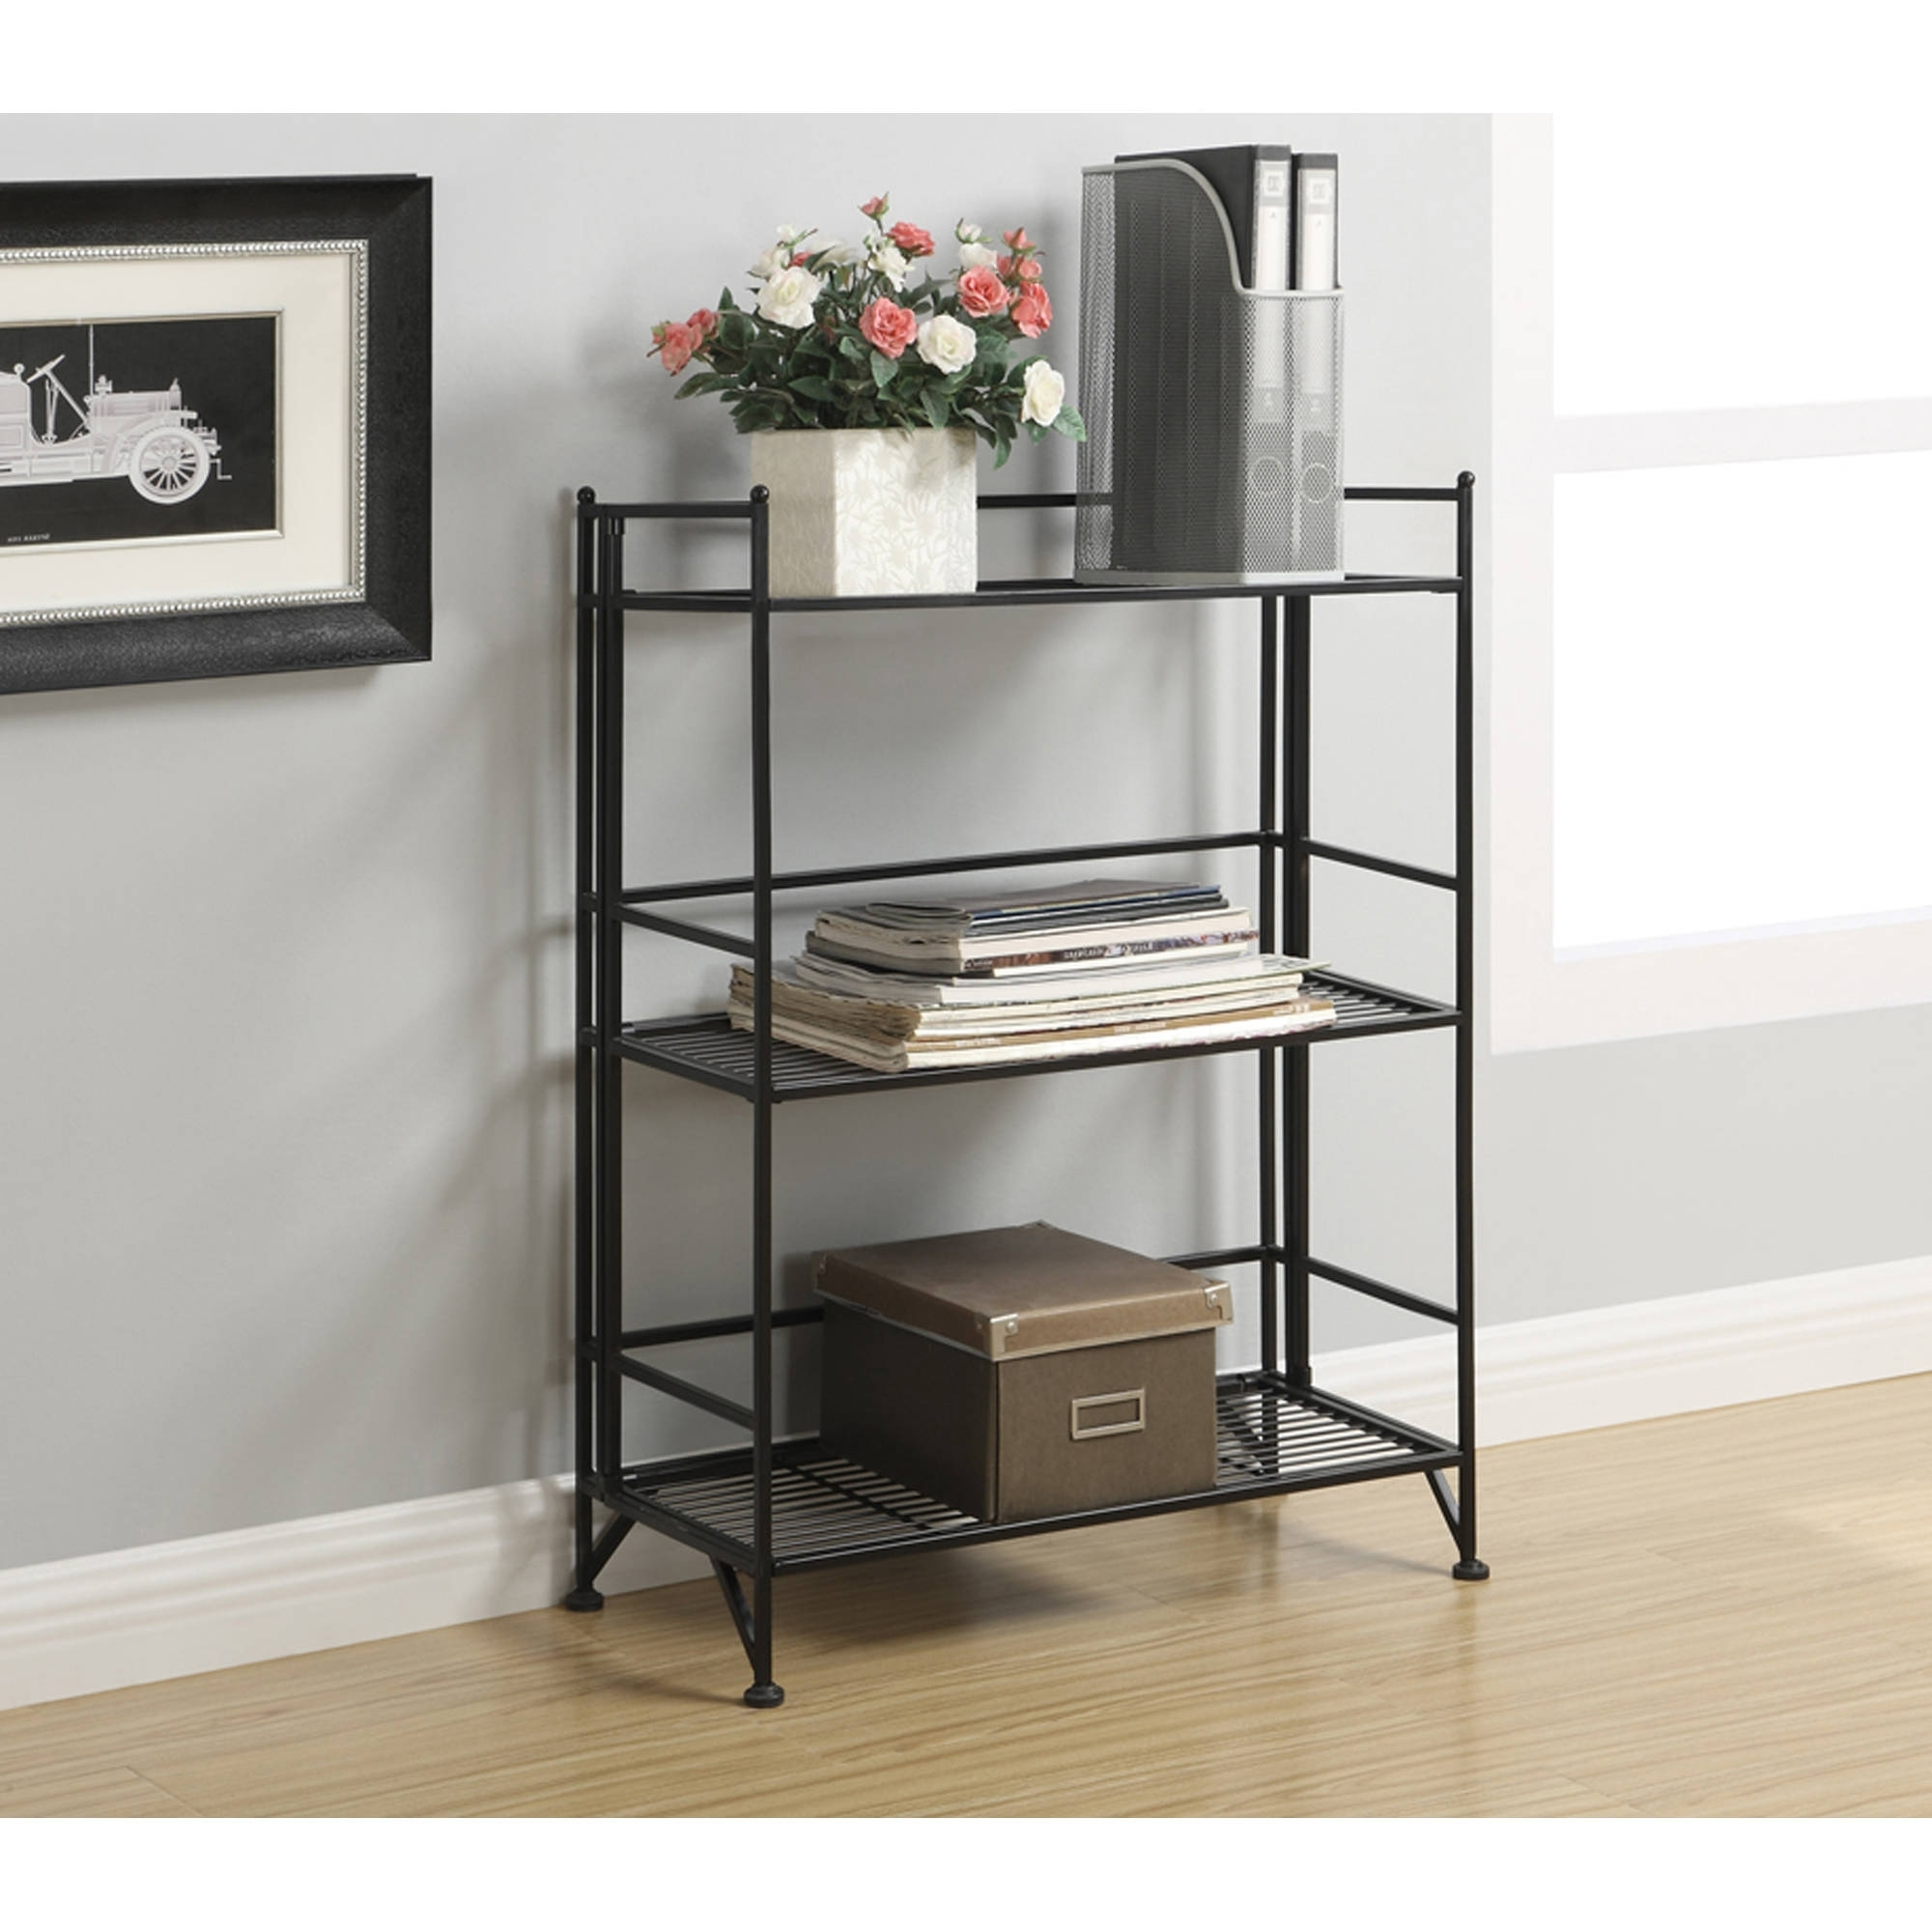 Newest Ideas Collection 2 Shelf Bookcase Metal Thesecretconsul With Small With Regard To Small Walmart Bookcases (View 8 of 15)